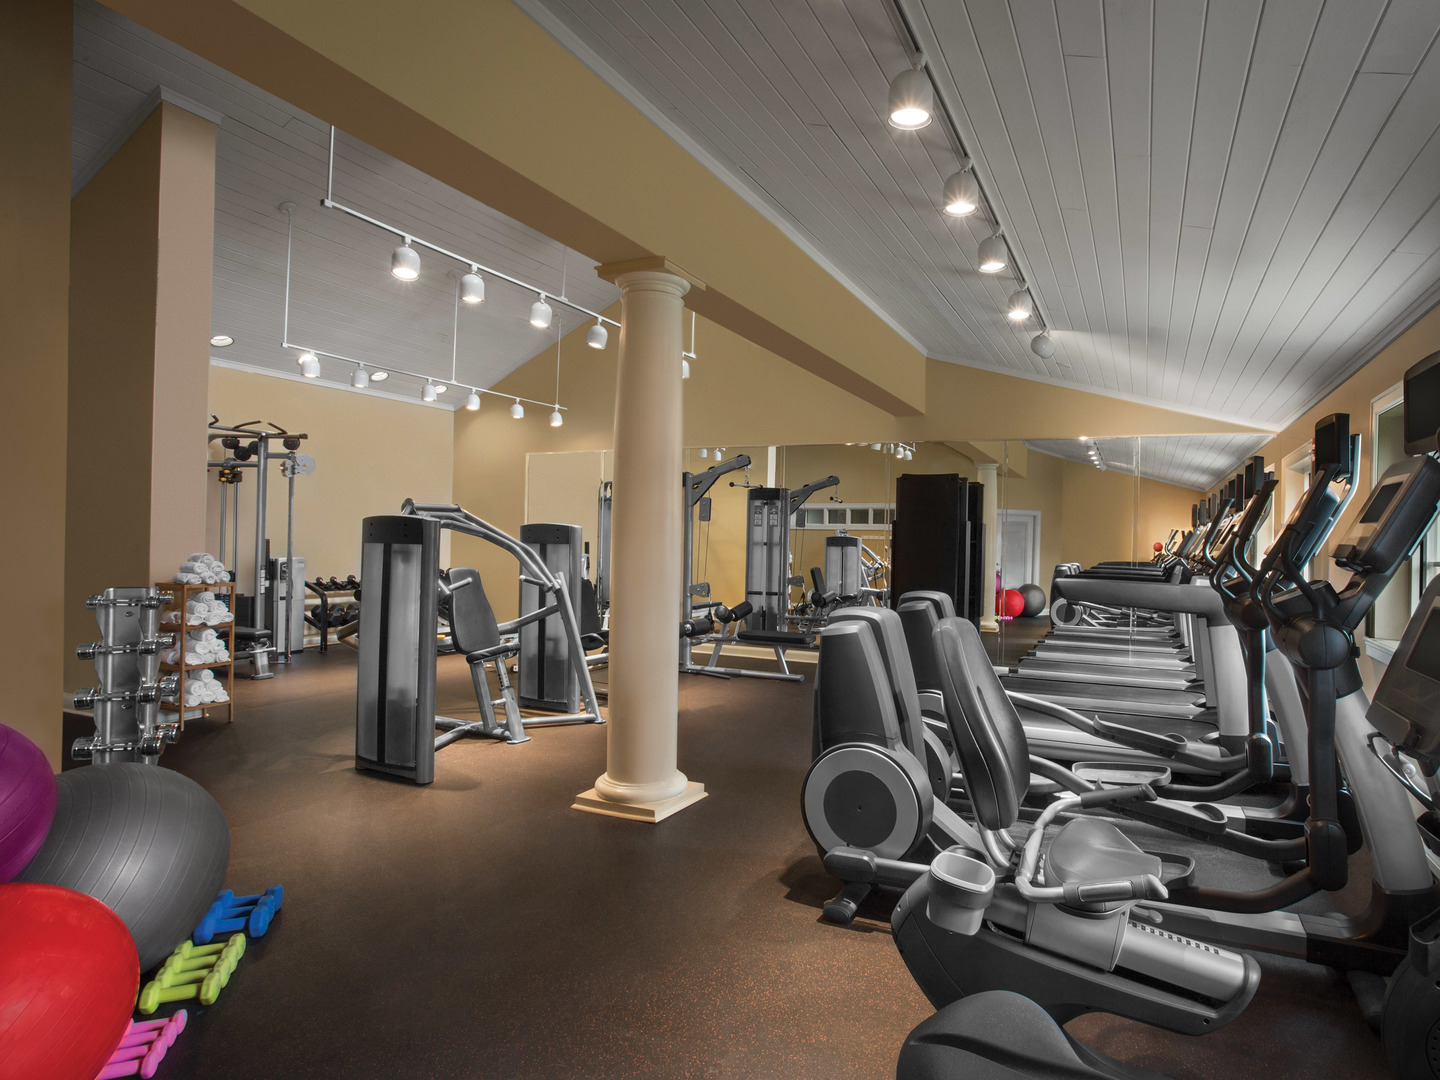 Marriott's Legends Edge at Bay Point Fitness Center. Marriott's Legends Edge at Bay Point is located in Panama City, Florida United States.